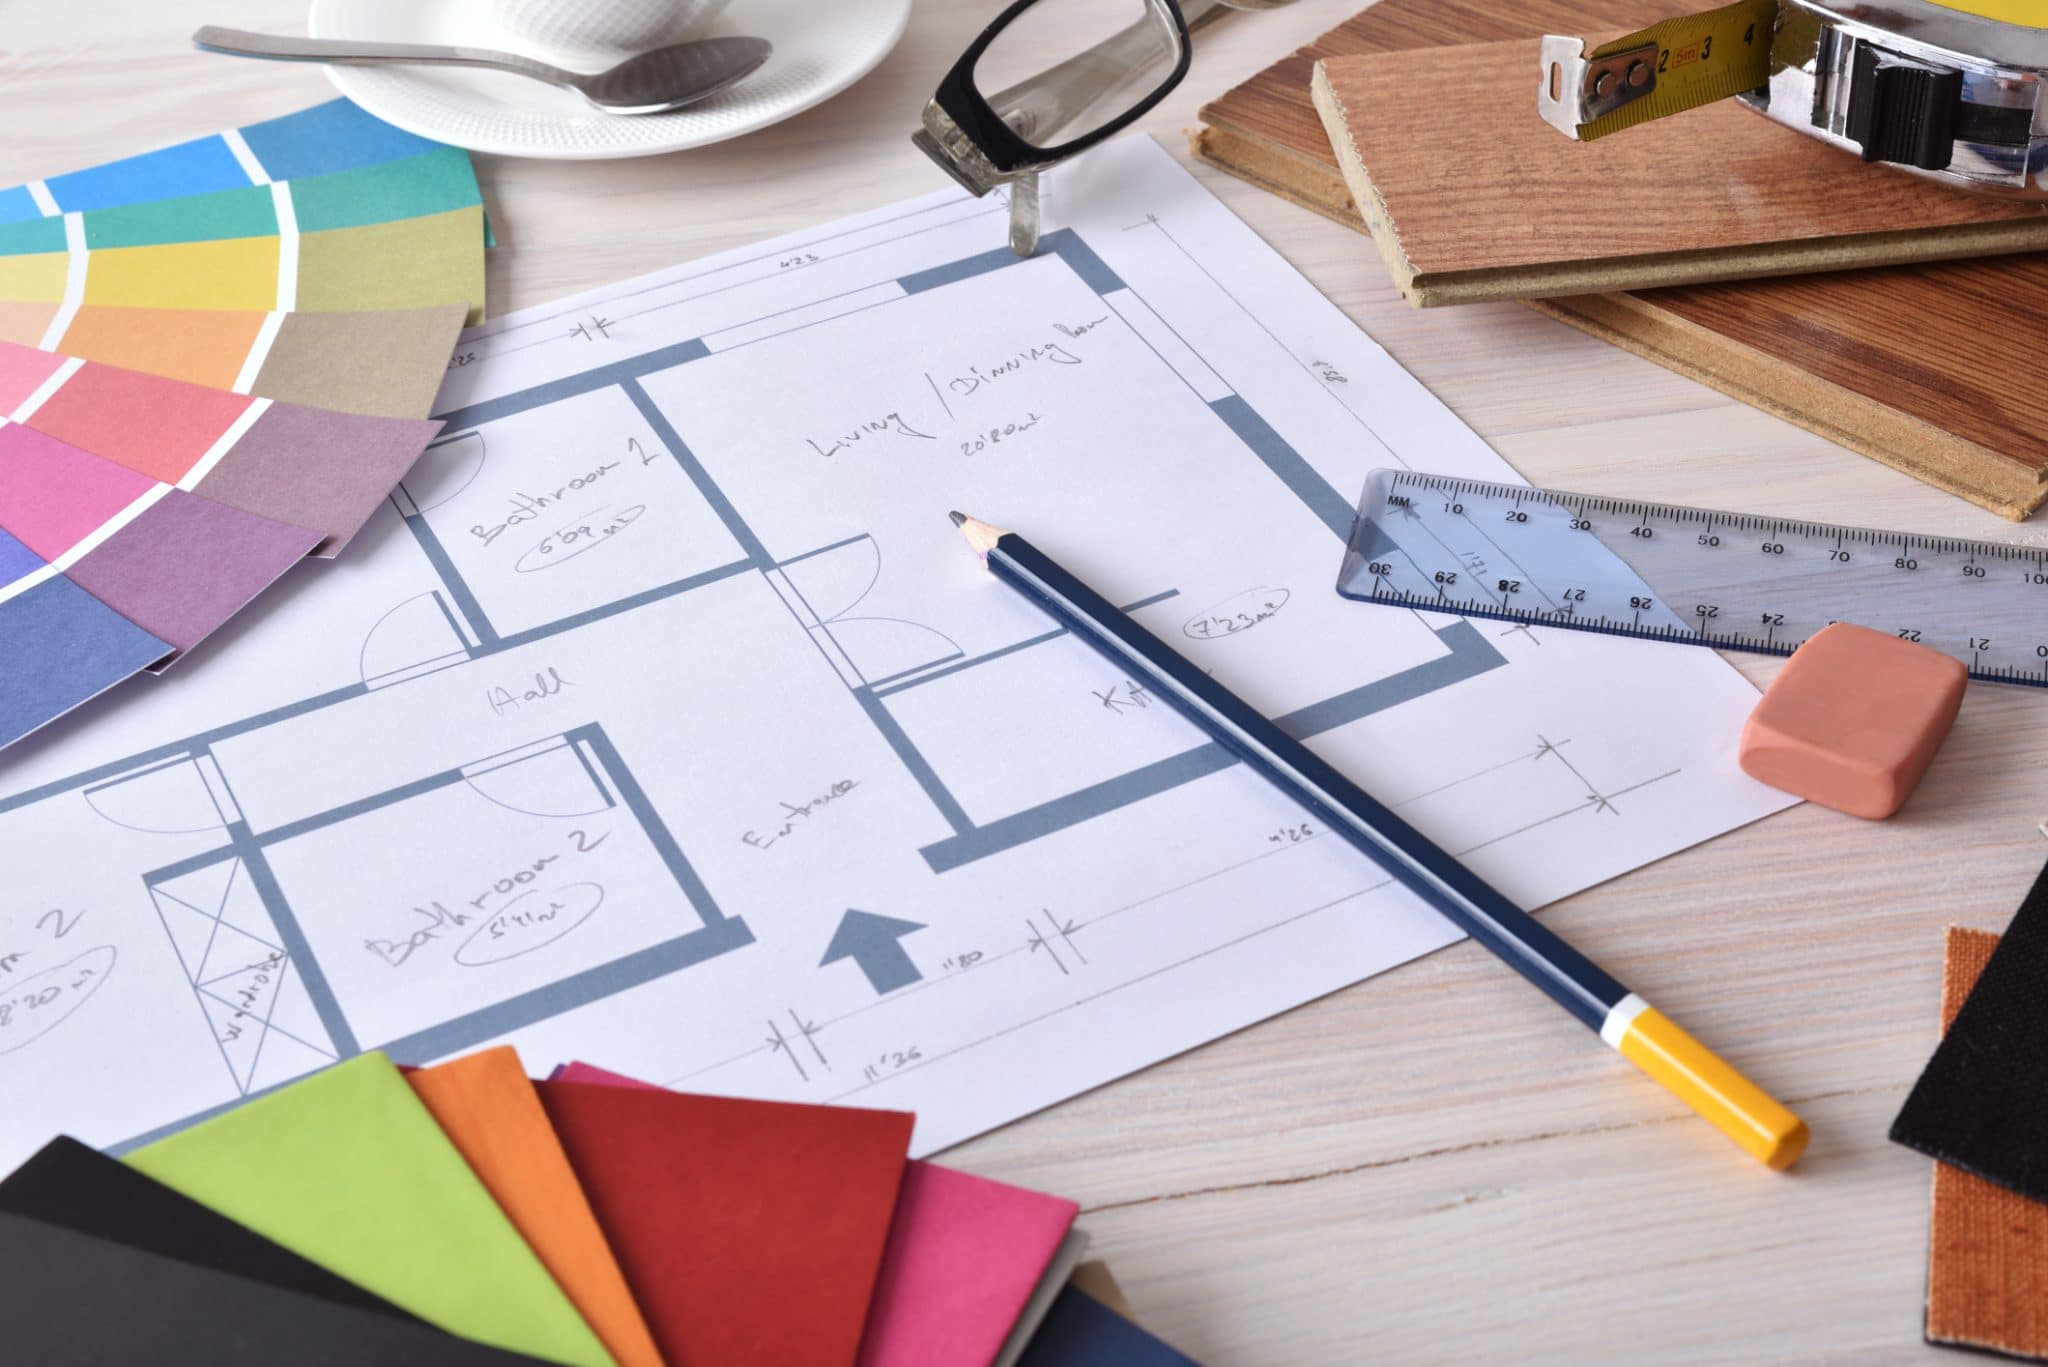 Renovating Before Selling? 3 Smart Tips for Doing it Right